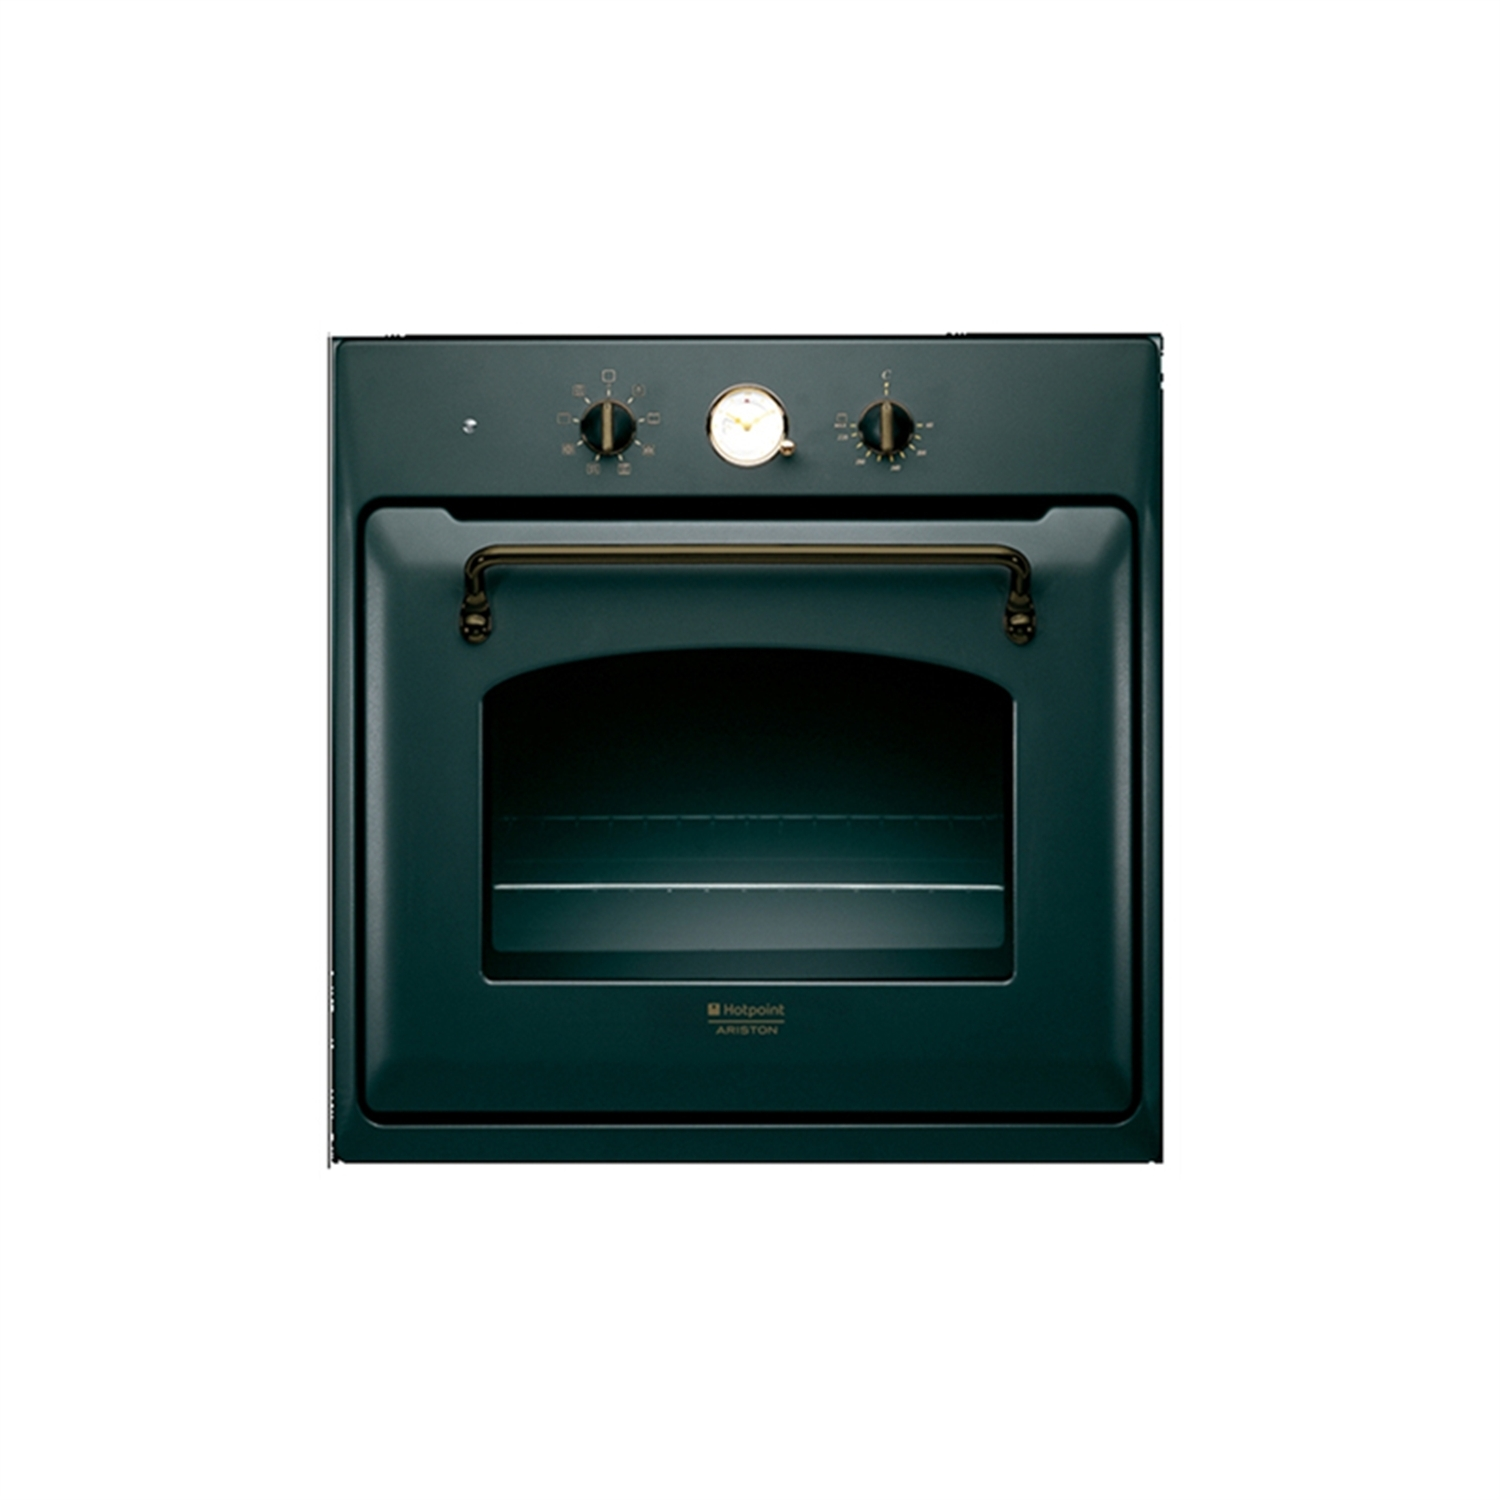 hotpoint-ariston ft 850.1 инструкция